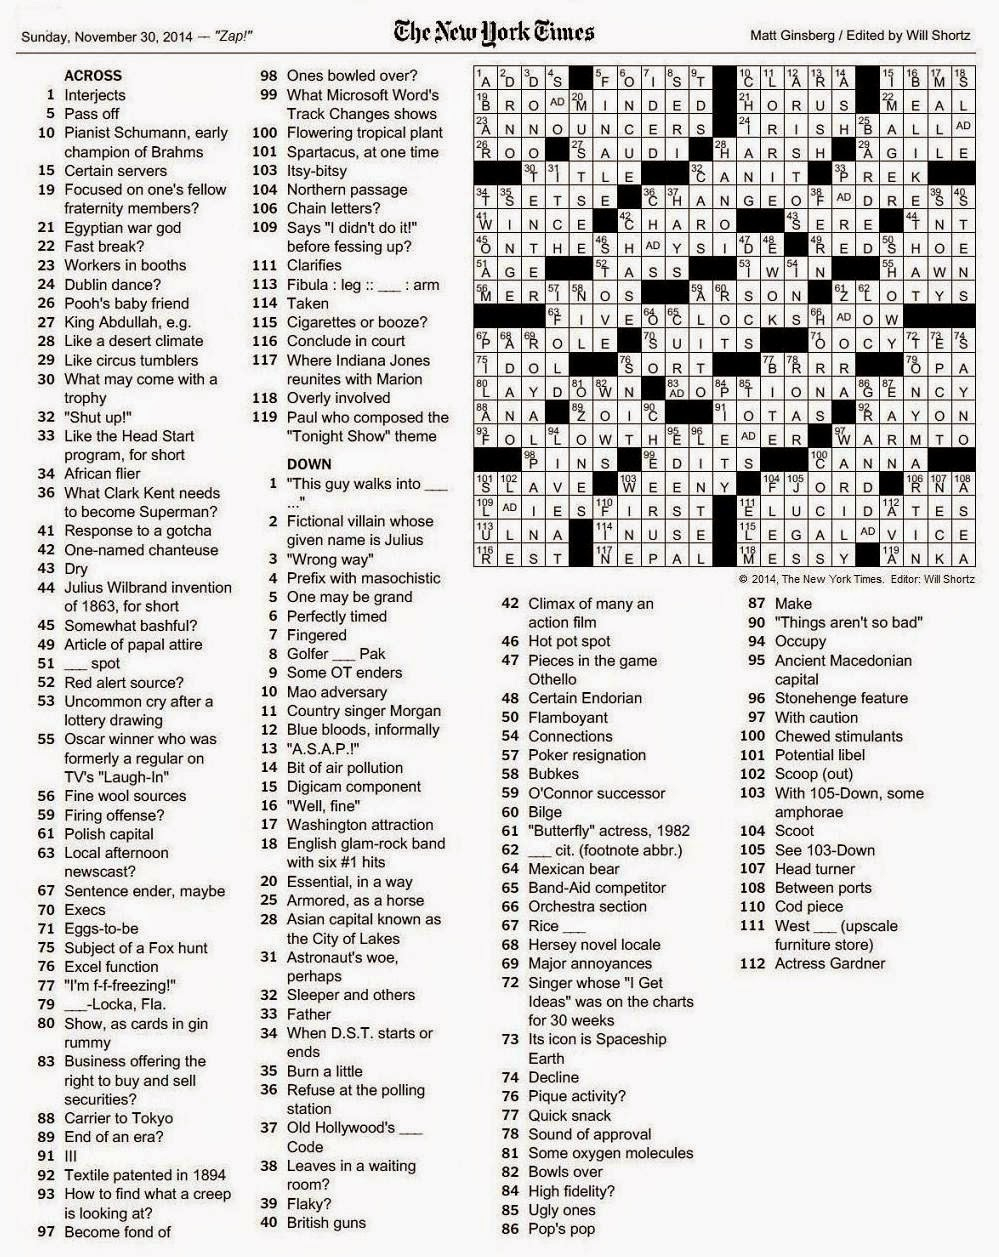 The New York Times Crossword In Gothic: 11.30.14 — Zap! - La Times Crossword Printable Version